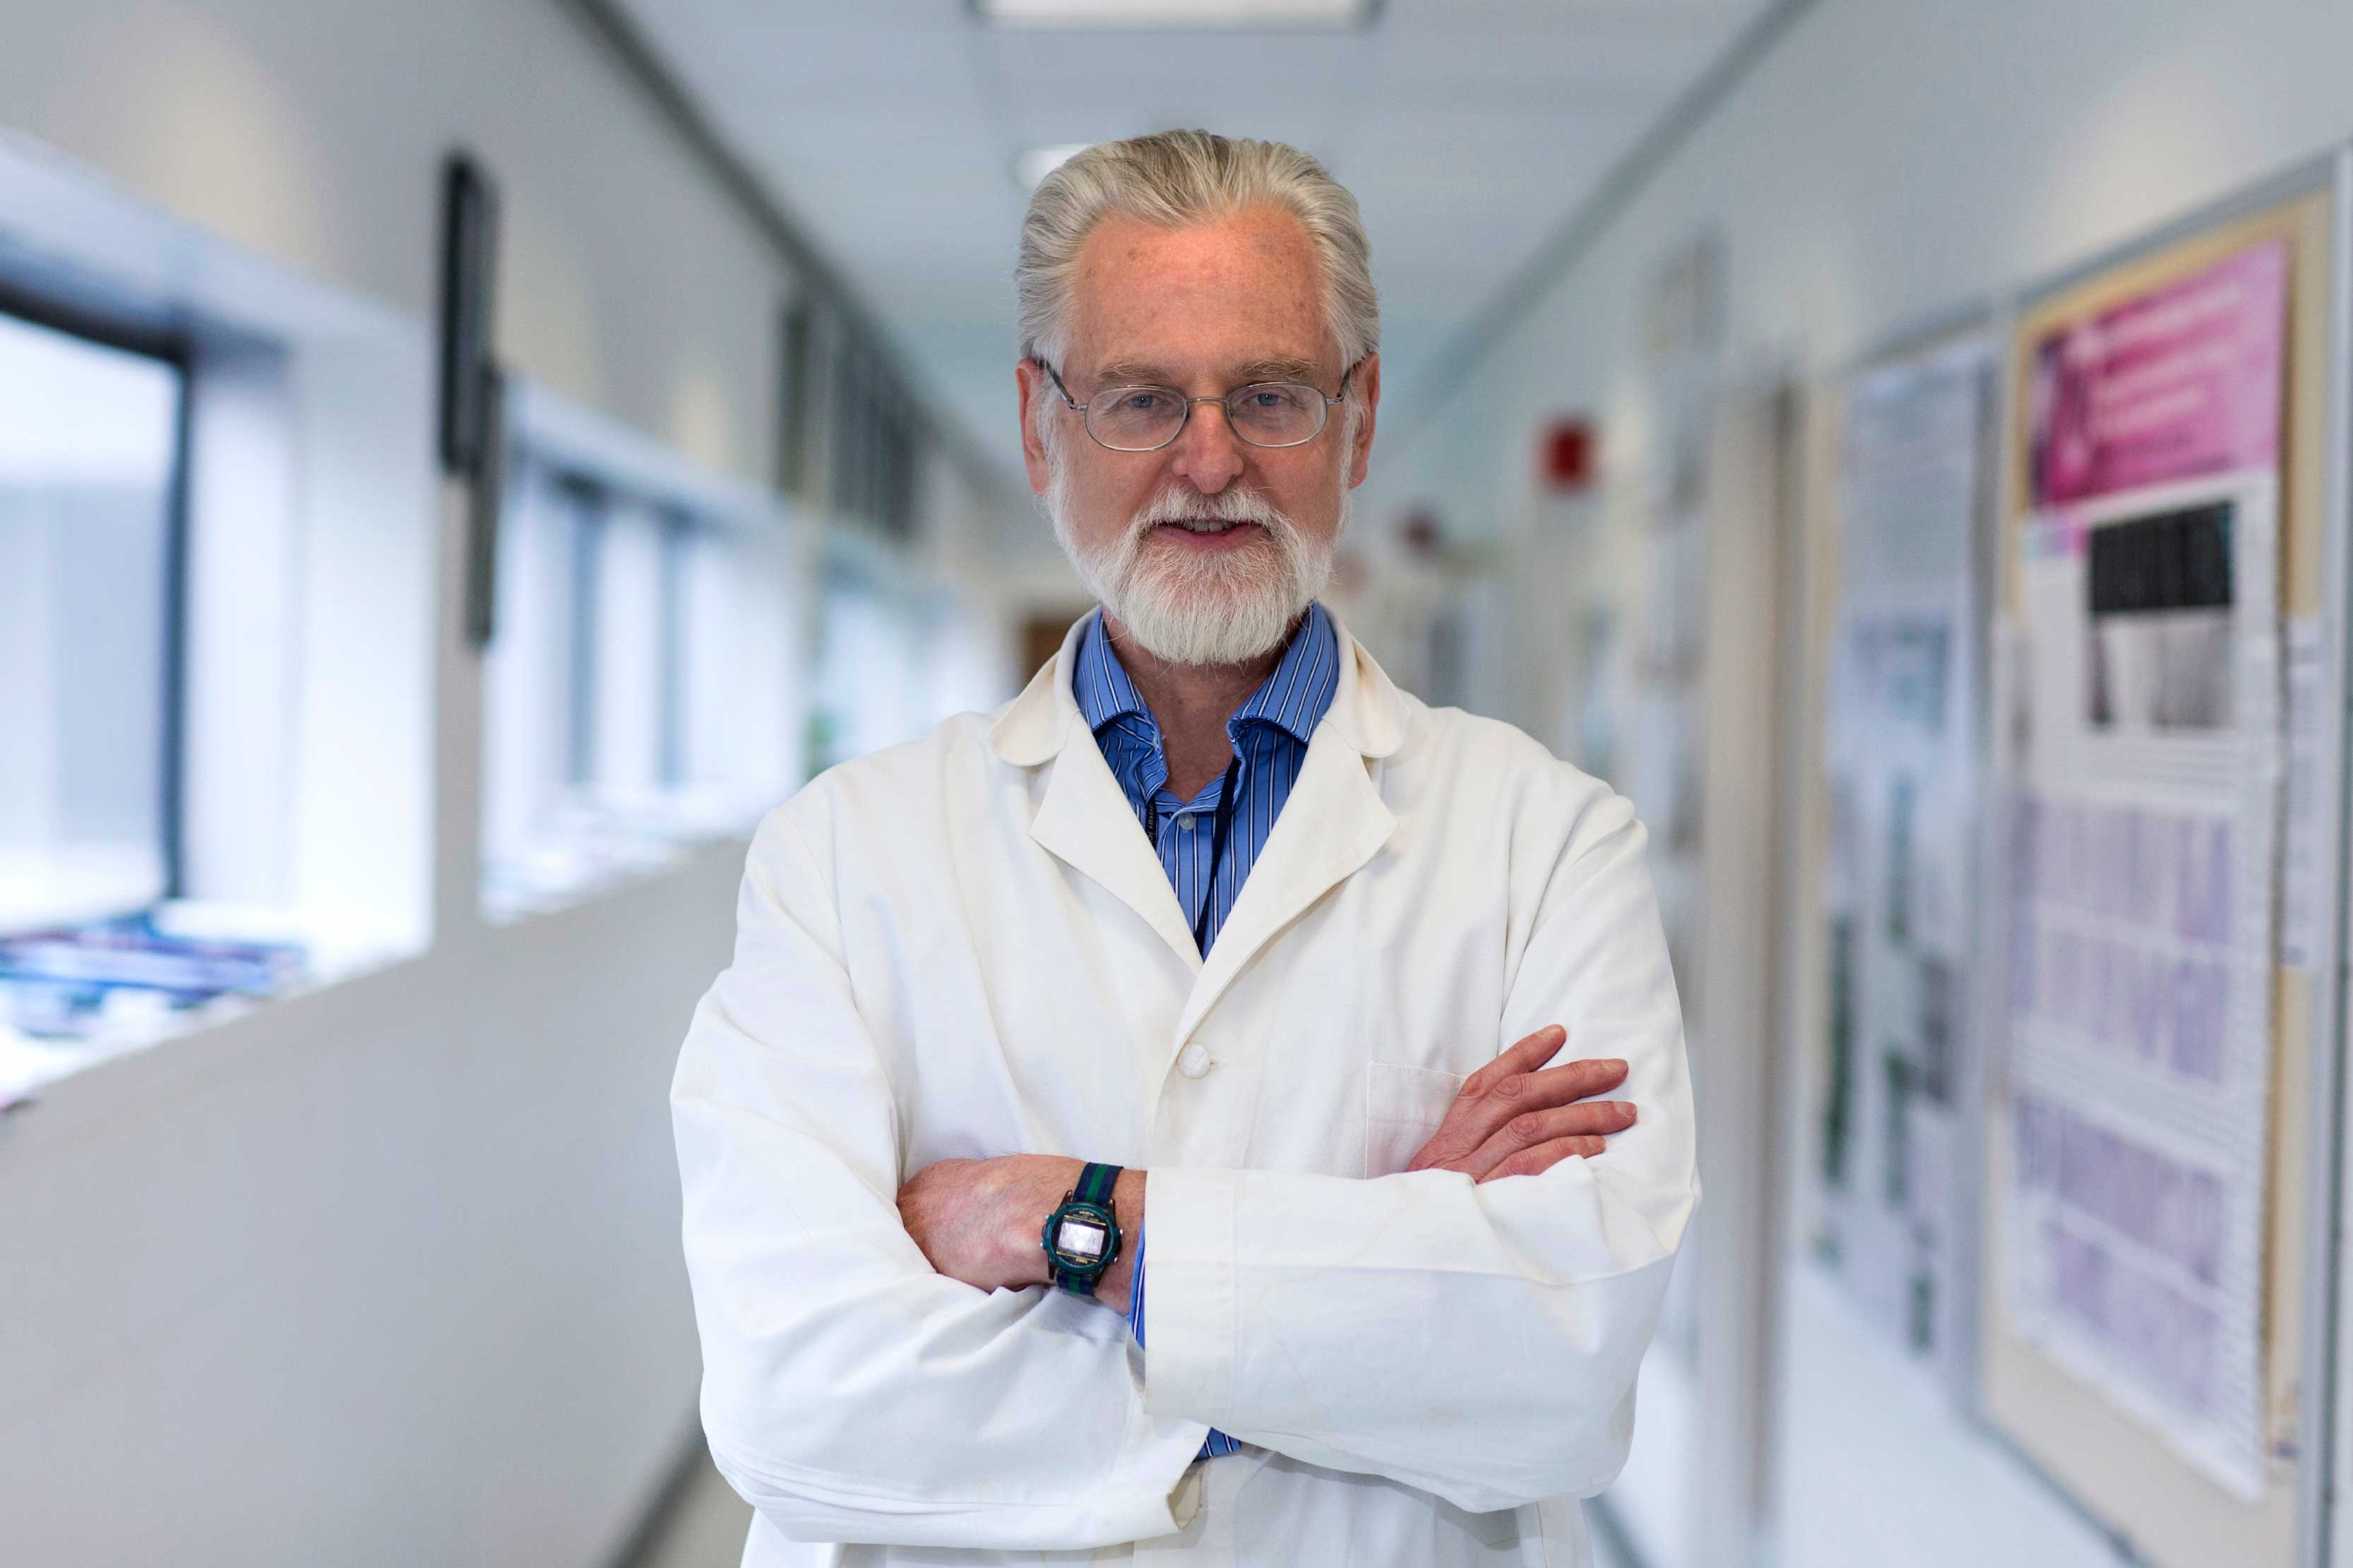 John Herr approached all that he did with remarkable energy, determination and enthusiasm, said his colleagues and former students in the School of Medicine. (Photo by Dan Addison, University Communications)